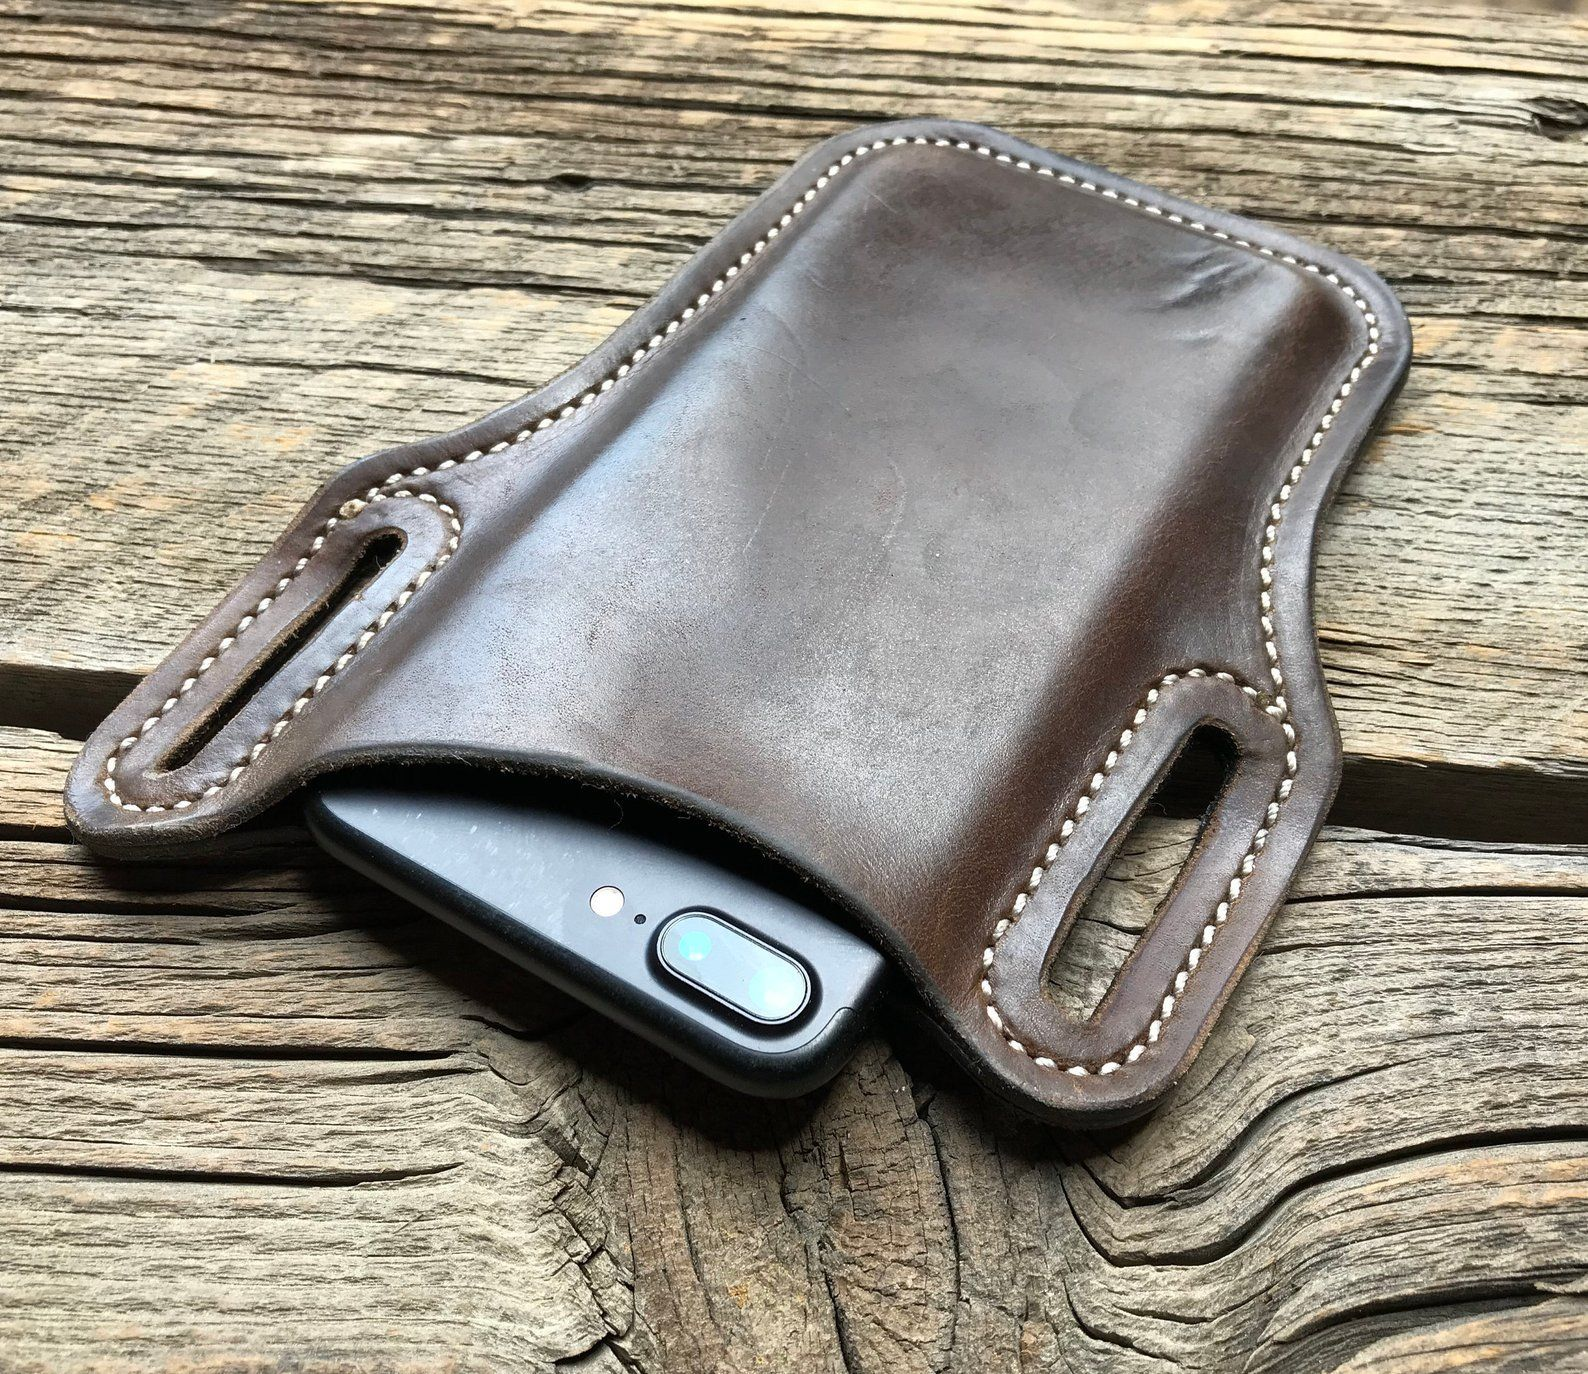 iPhone 8 / 7 / 6s leather holster